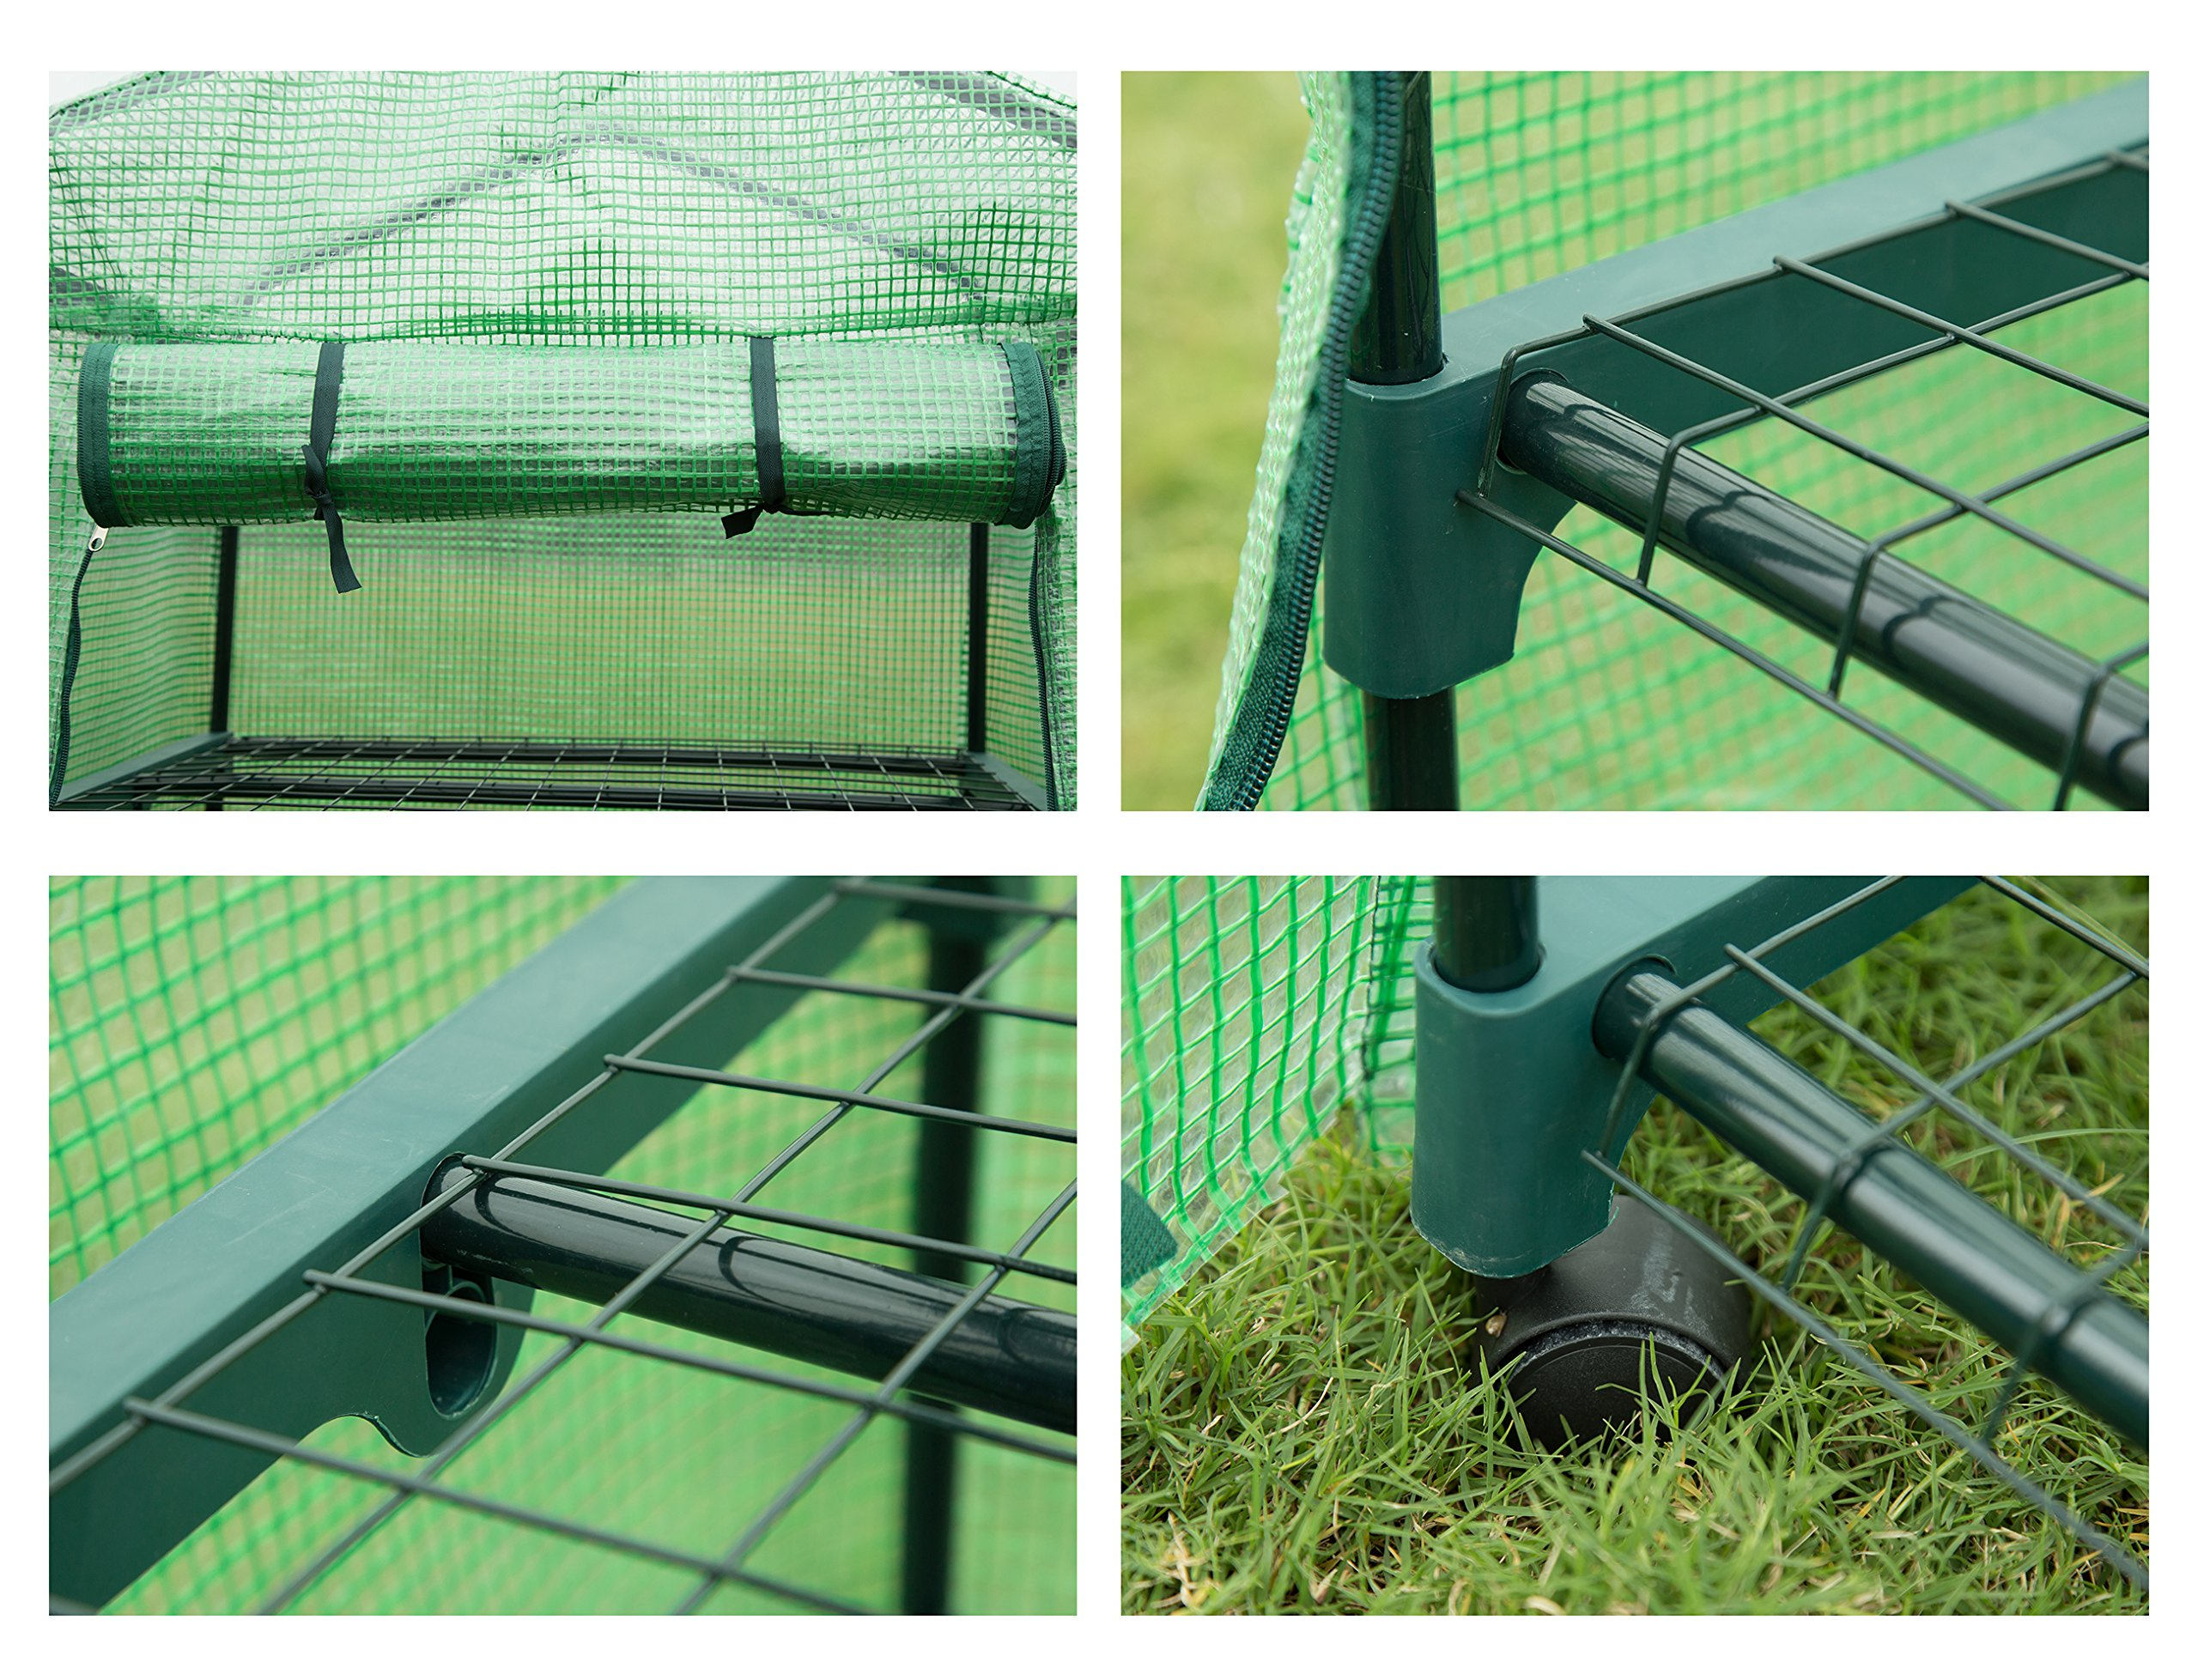 GOJOOASIS 4 Tier Mini Portable Garden Greenhouse on Wheels Plants Shed Hot House for Indoor and Outdoor by GOJOOASIS (Image #8)